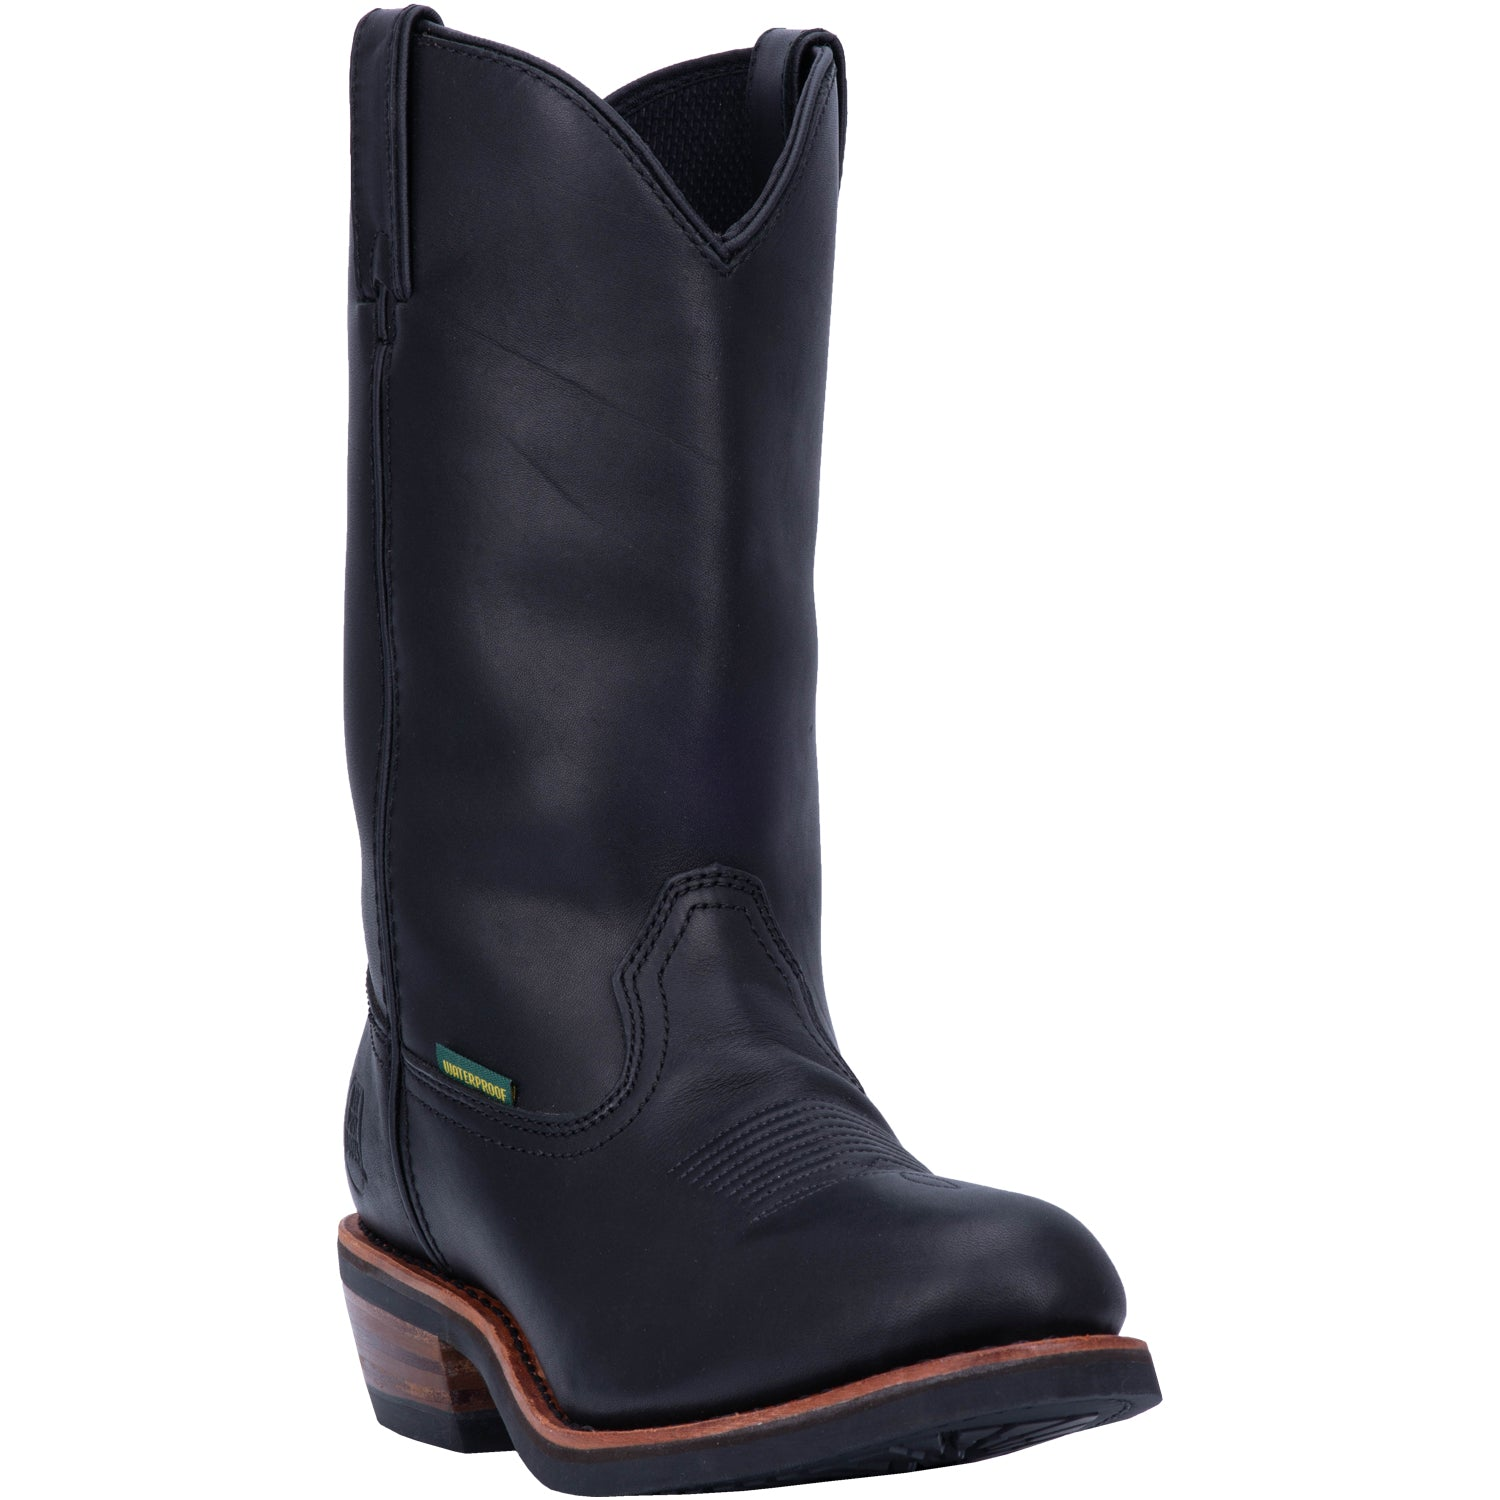 ALBUQUERQUE WATERPROOF LEATHER BOOT 4248832802858